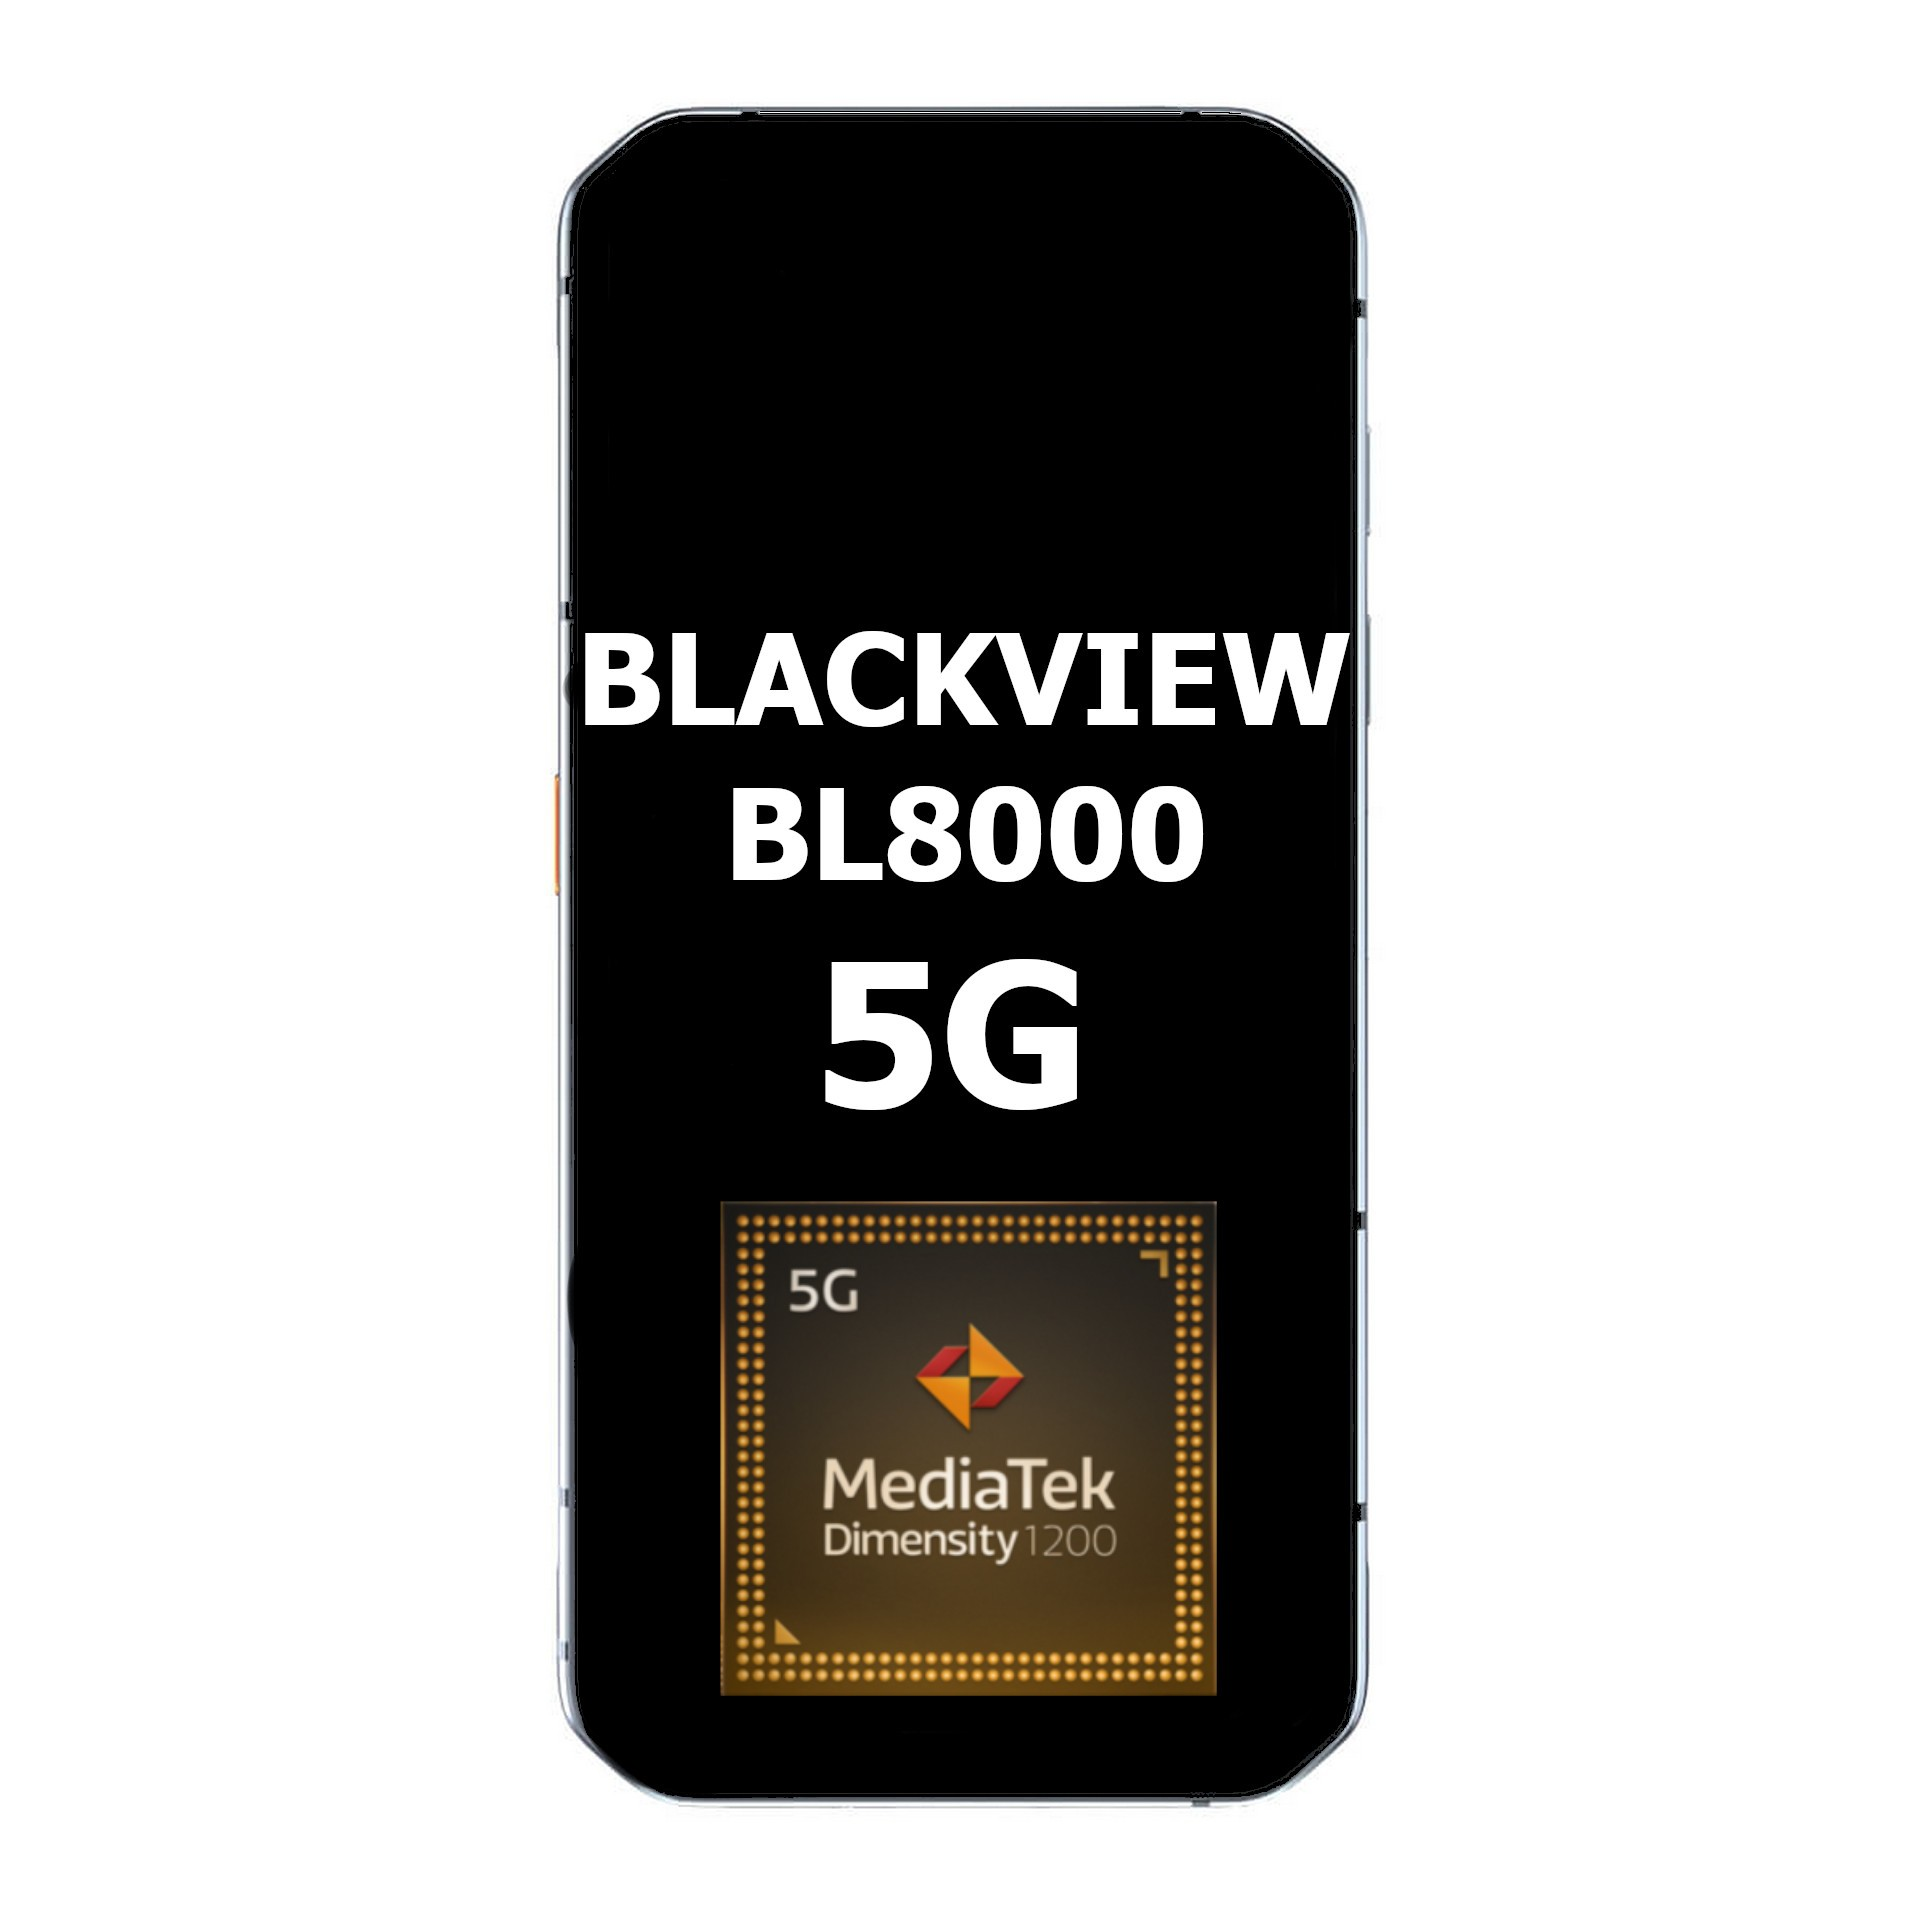 Blackview BL8000